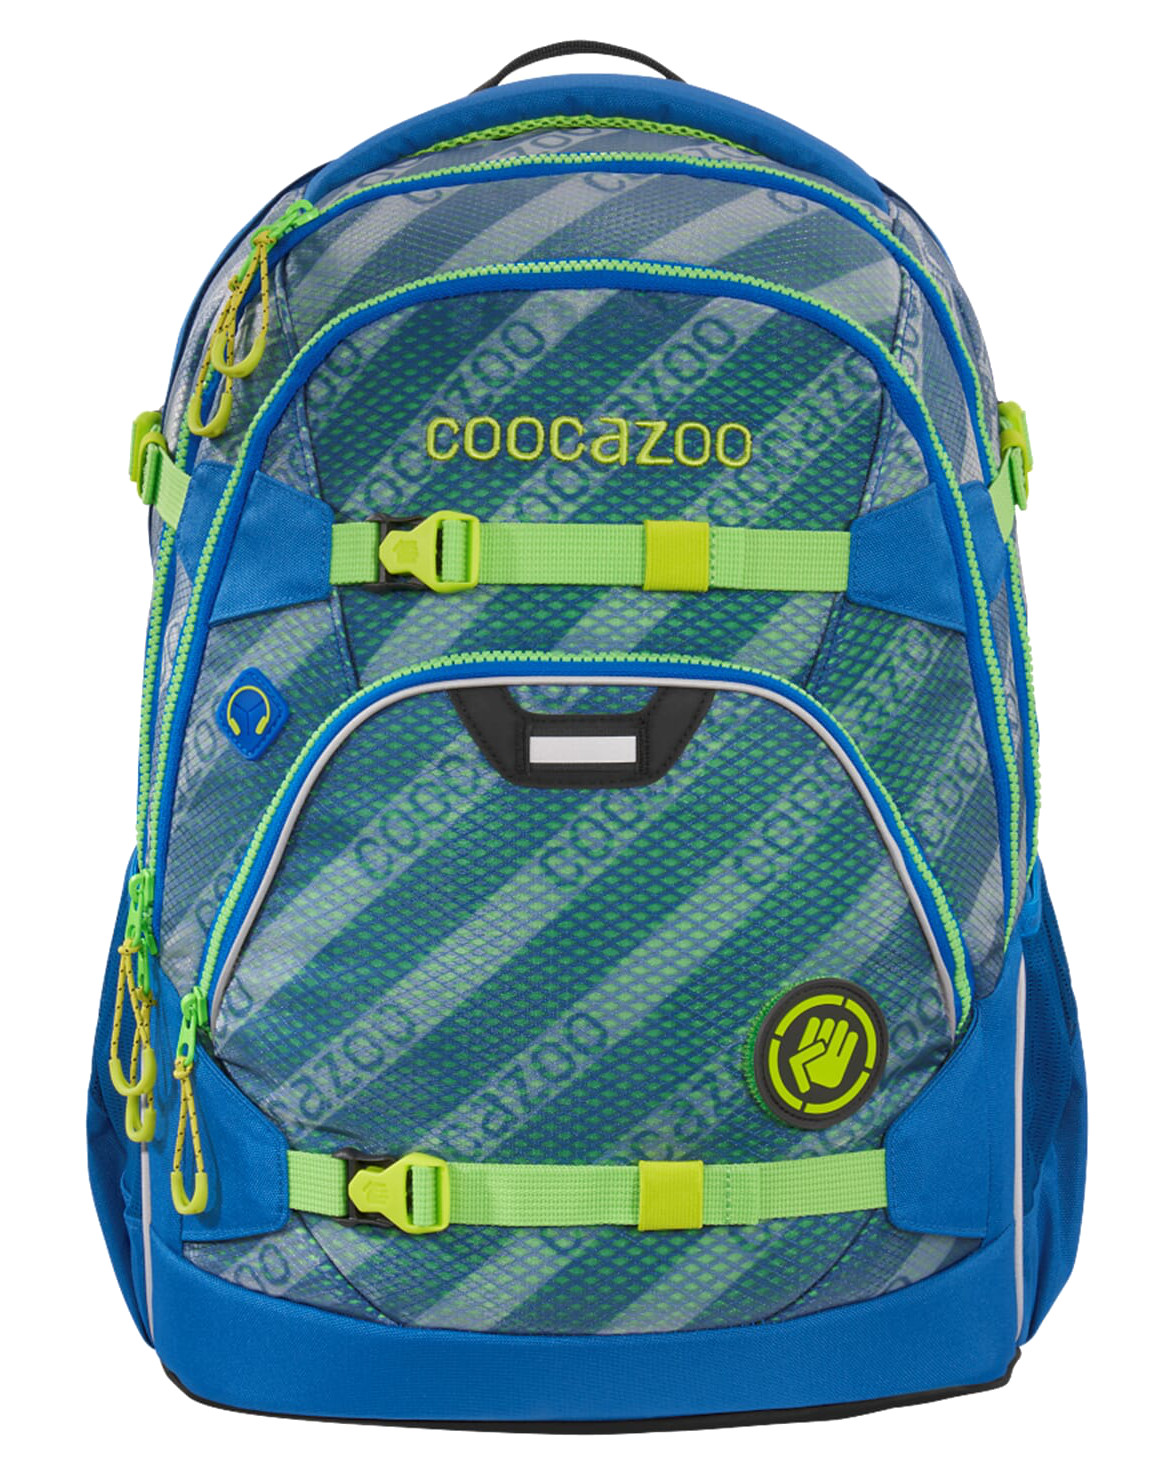 Coocazoo 'ScaleRale' Schulrucksack Limited Edition 1,2kg 30l MeshFlash neonyellow